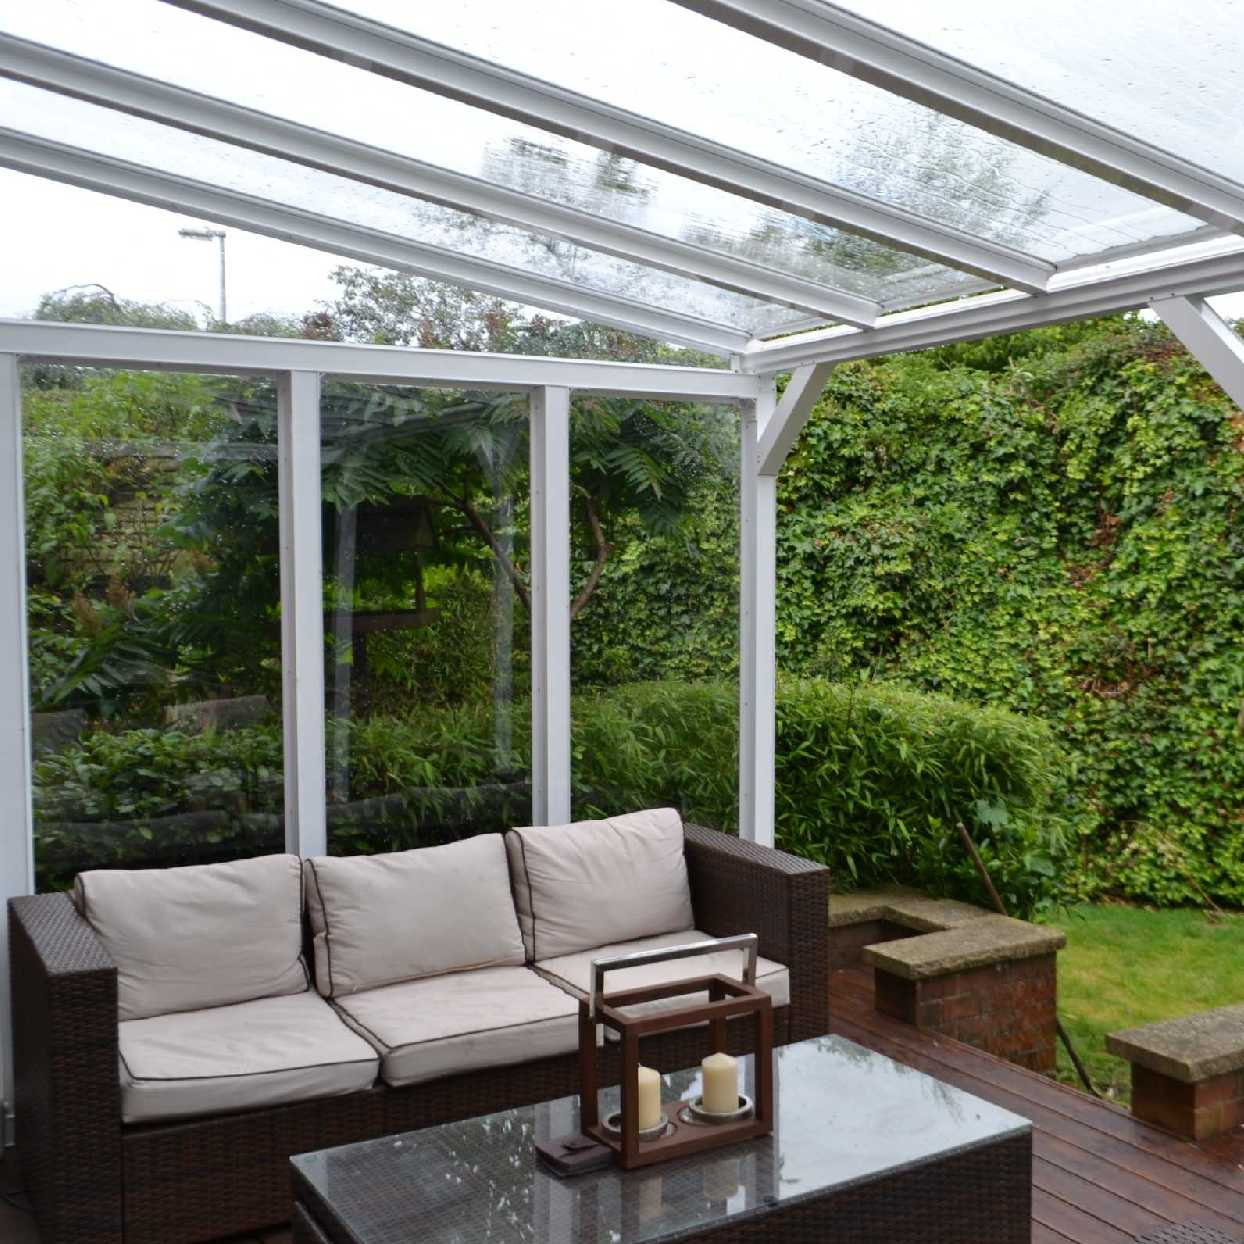 Omega Smart Lean-To Canopy UNGLAZED for 6mm Glazing - 7.0m (W) x 3.0m (P), (4) Supporting Posts